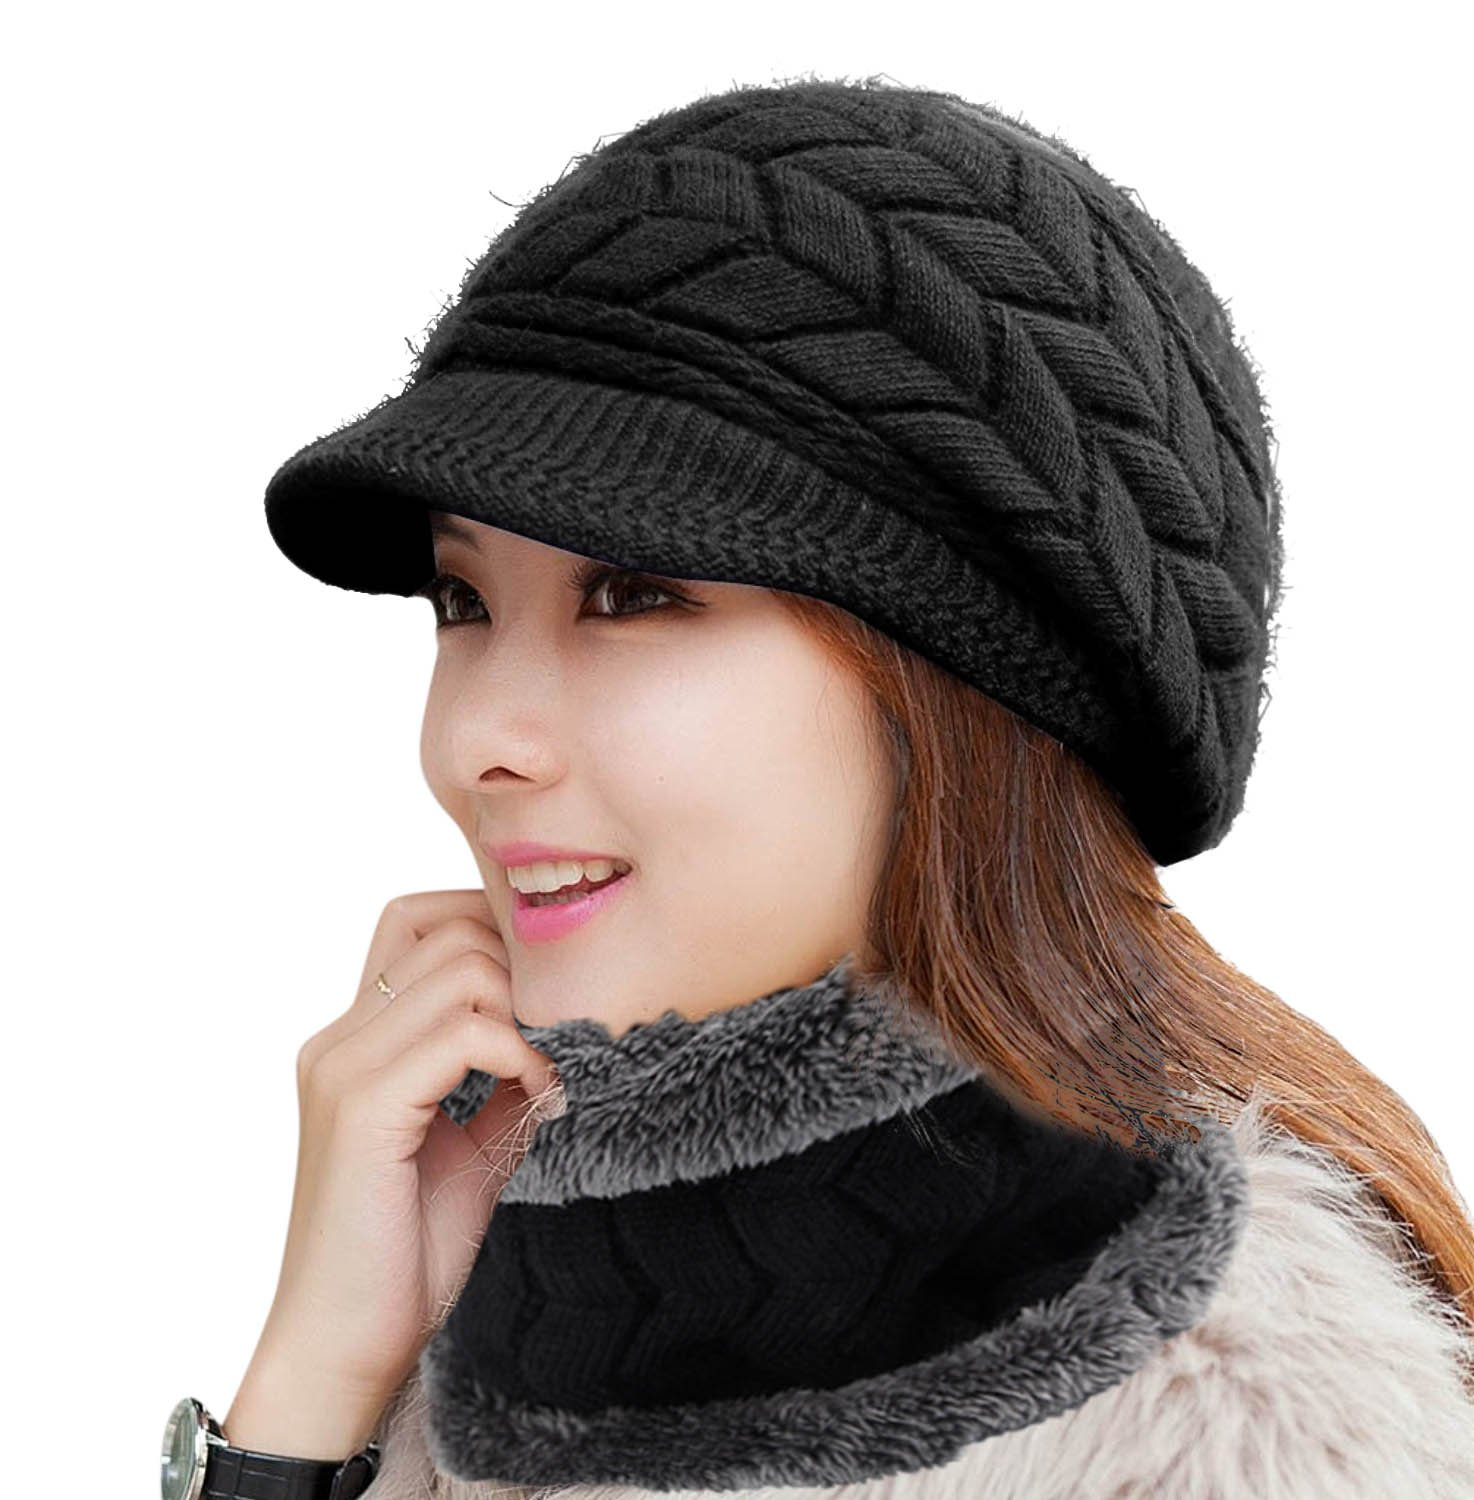 HINDAWI Winter Scarf Hat Visor Caps Infinity Scarves Knit Warm Snow Outdoor Hats for Women Black